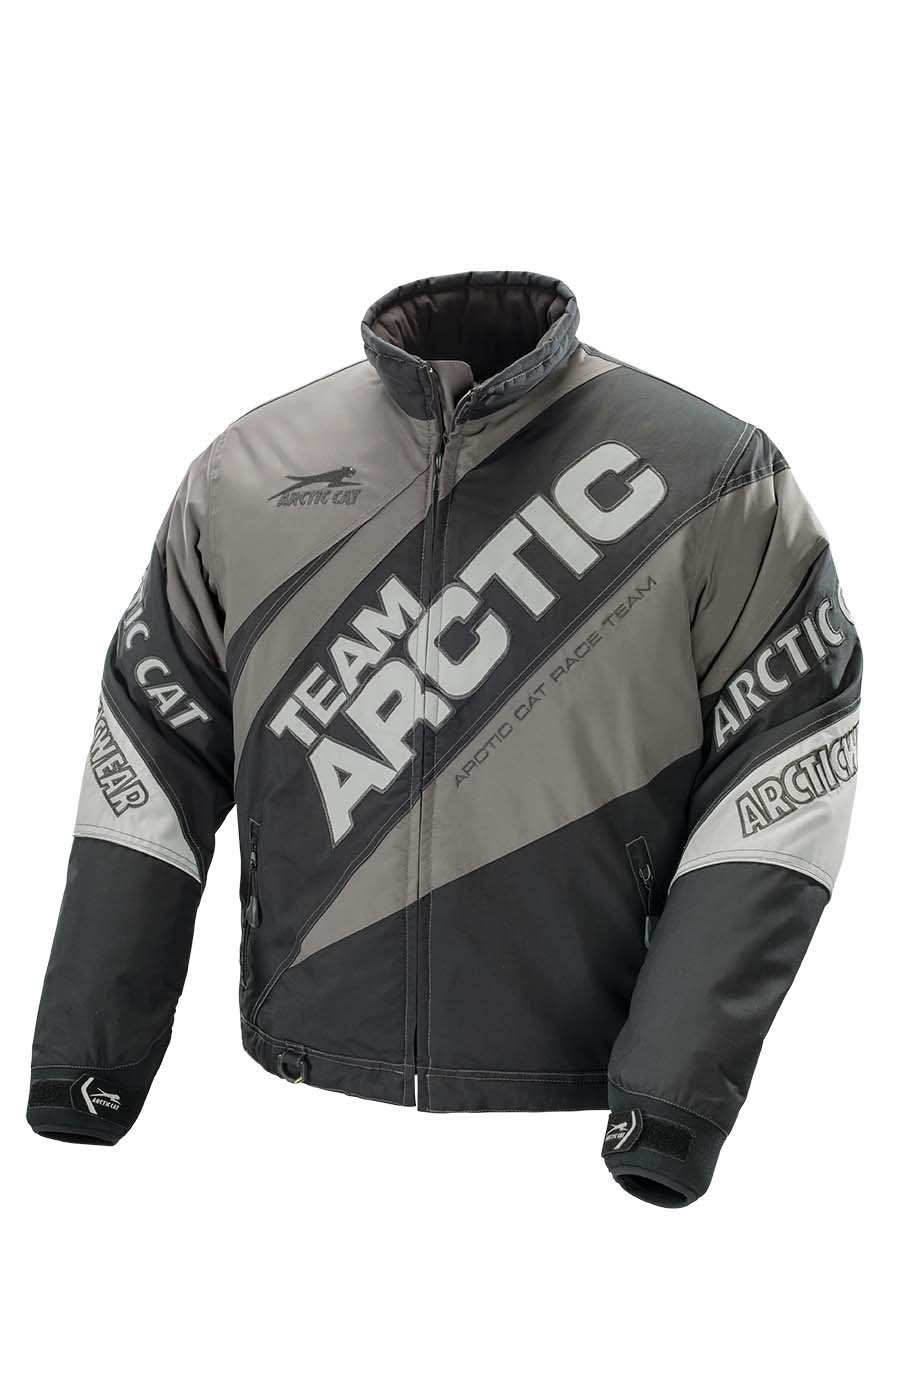 Arctic Cat Jacket Team Arctic Lime/Gray Youth 8